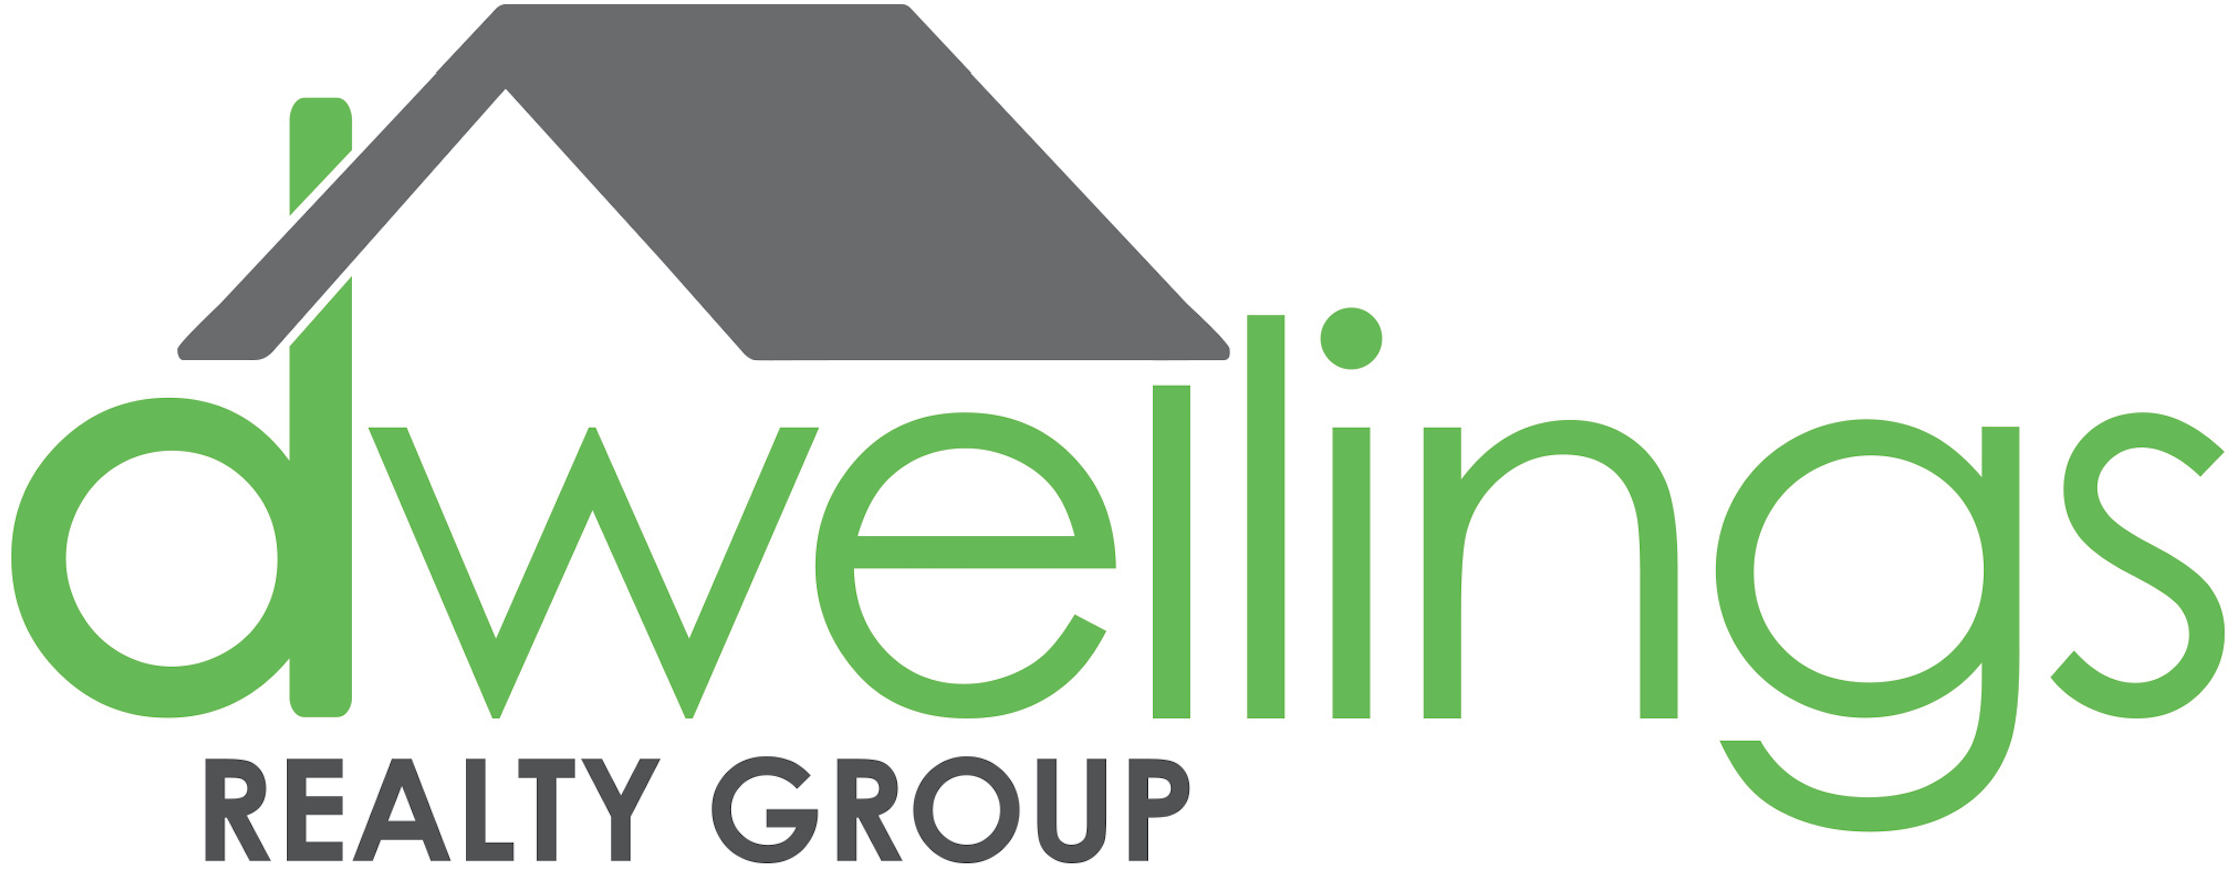 The Dwellings Team - Old Town Scottsdale Homes For Sale